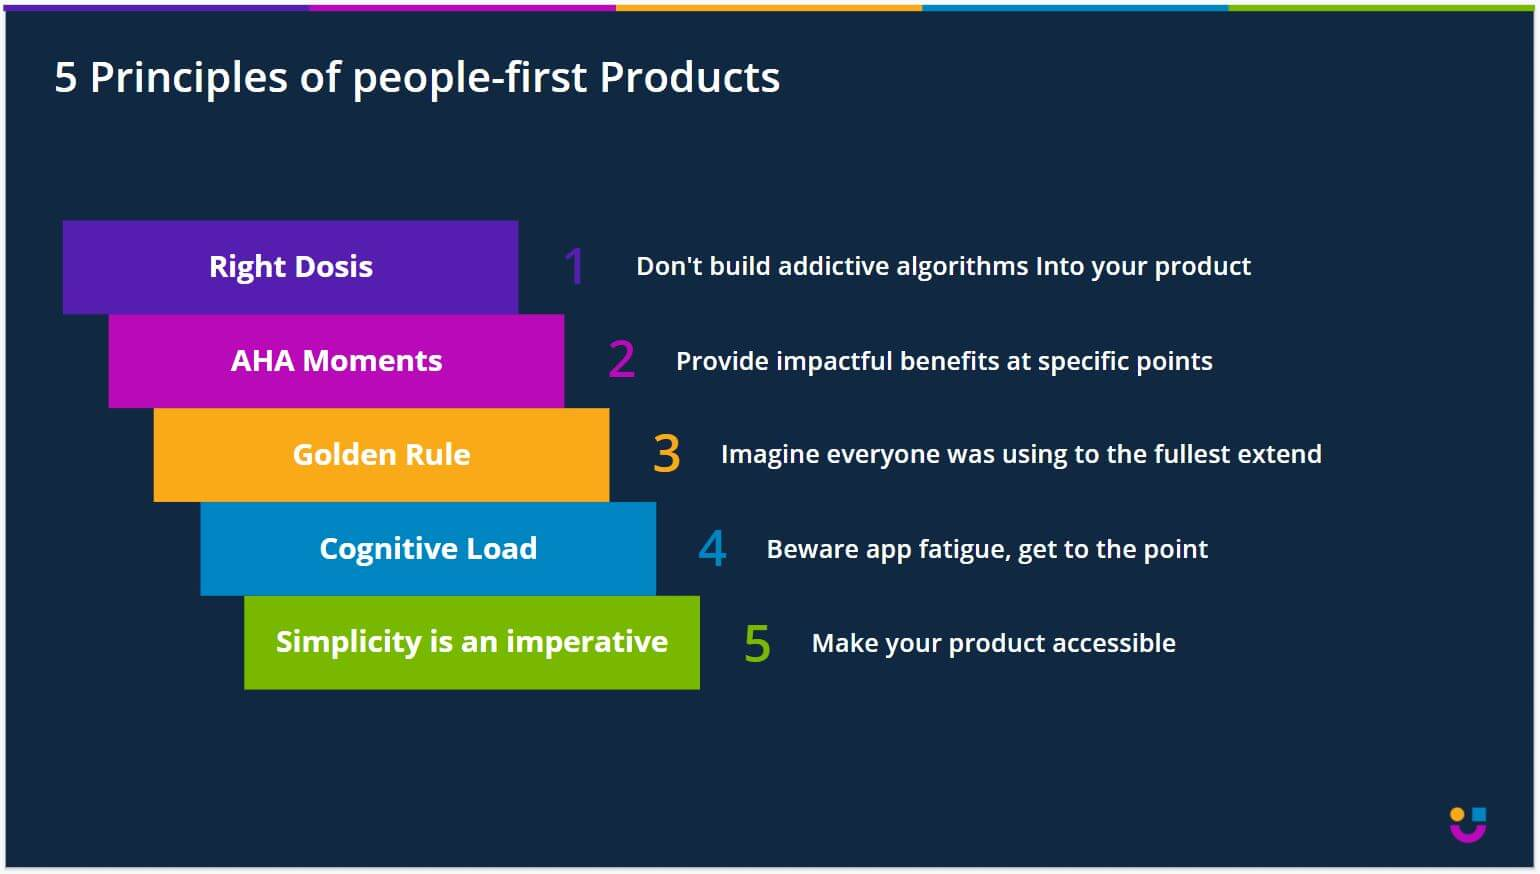 5 principles of building people-first products